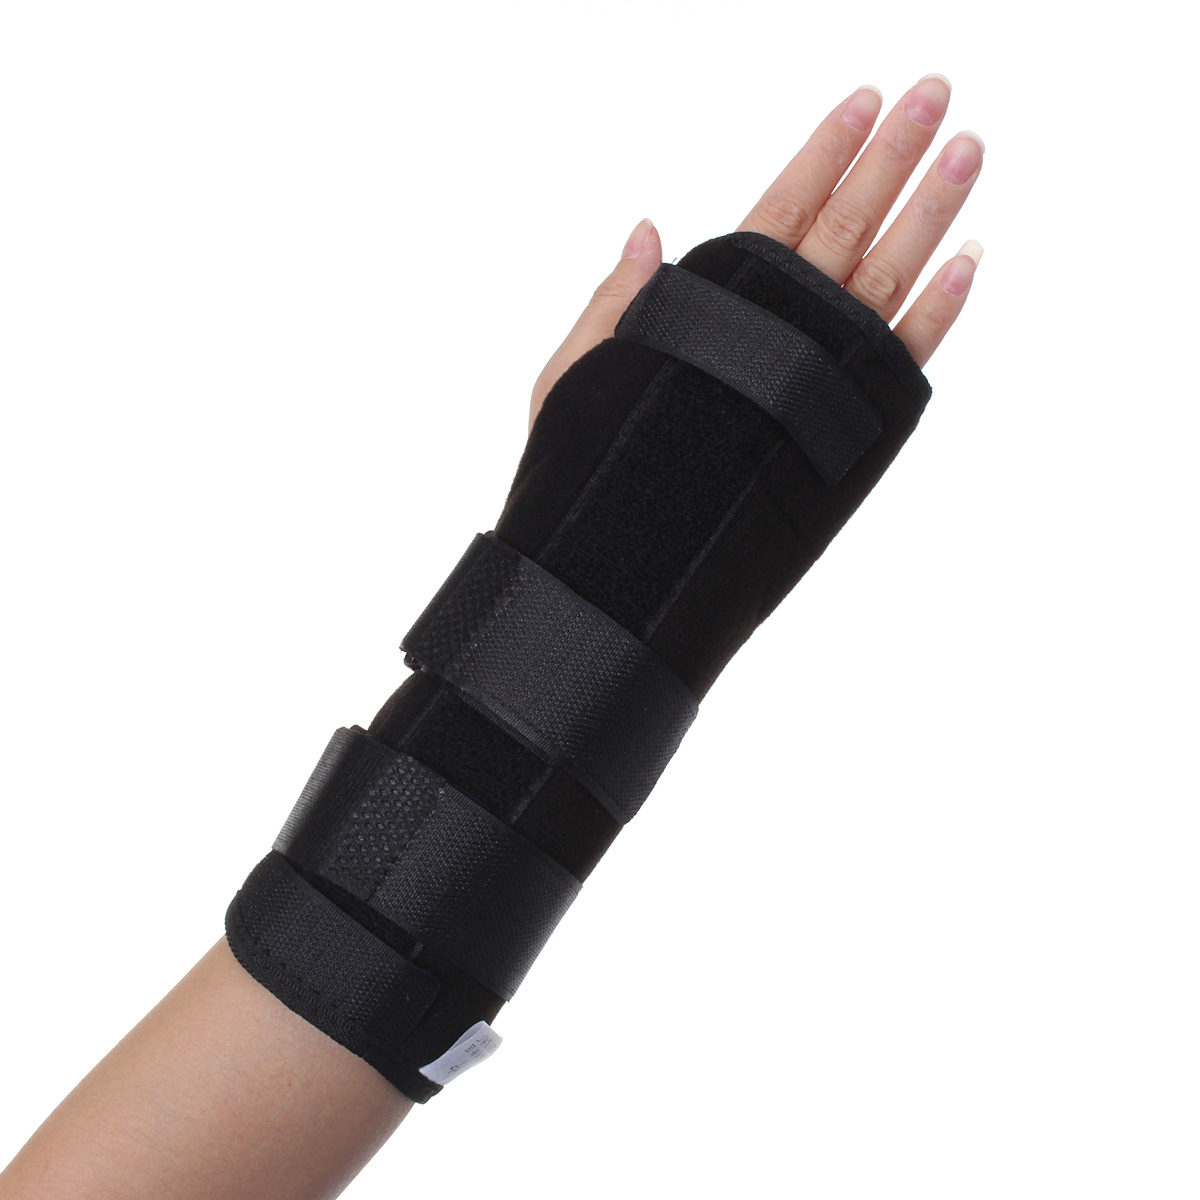 Wrist Brace Support Splint For Carpal Tunnel Arthritis Sport Sprain Strain Pain